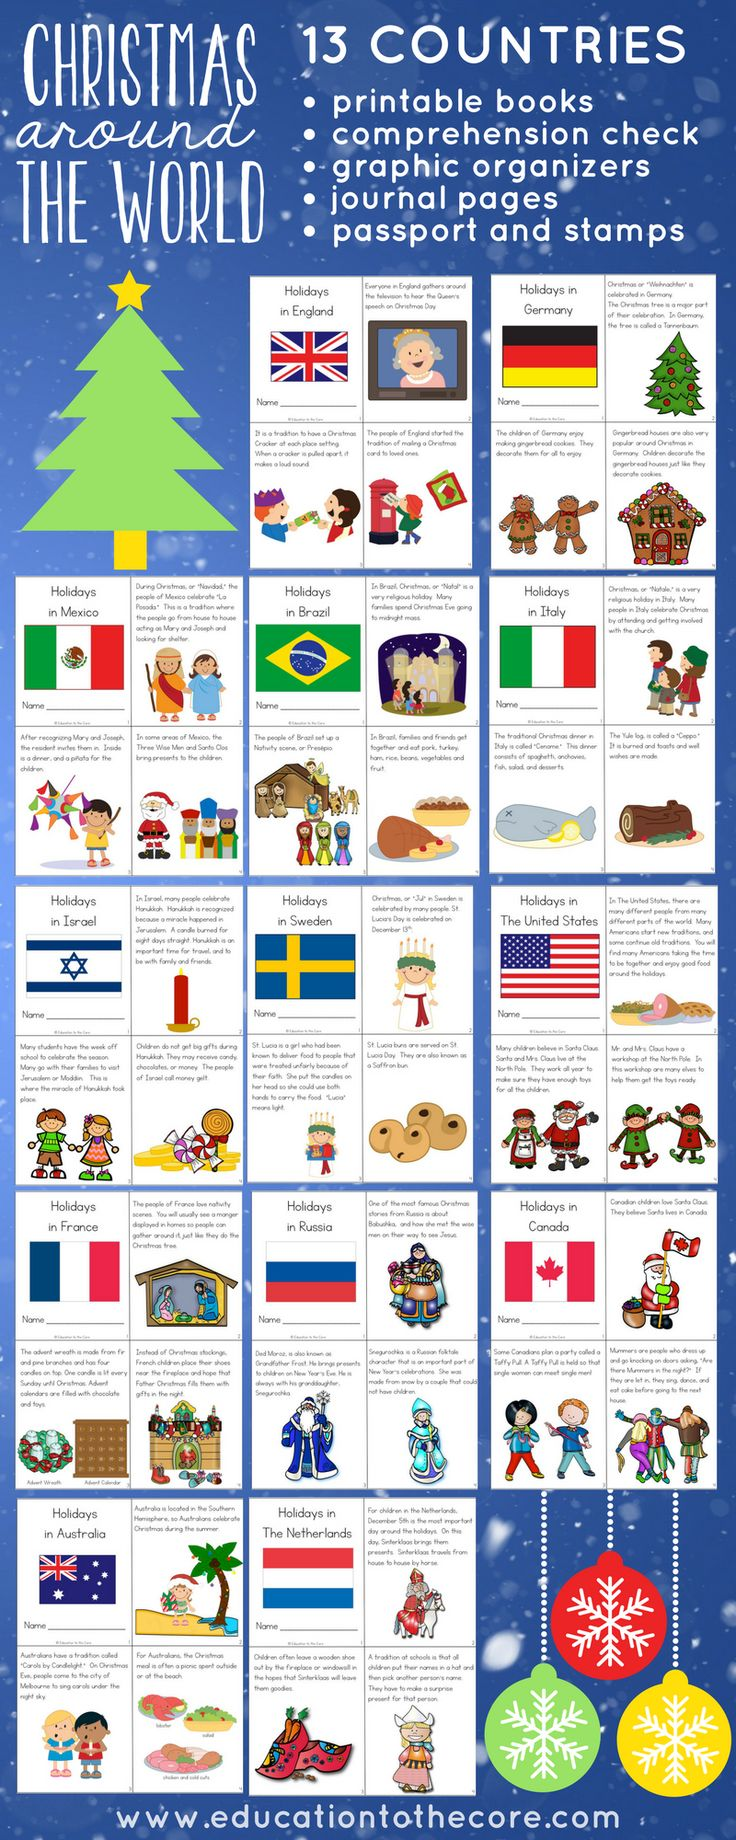 Christmas Around the World Unit. Complete with printable readers, passport and passport stamps, writing journal, graphic organizers! Great for all your Holidays Around the World Celebrations!